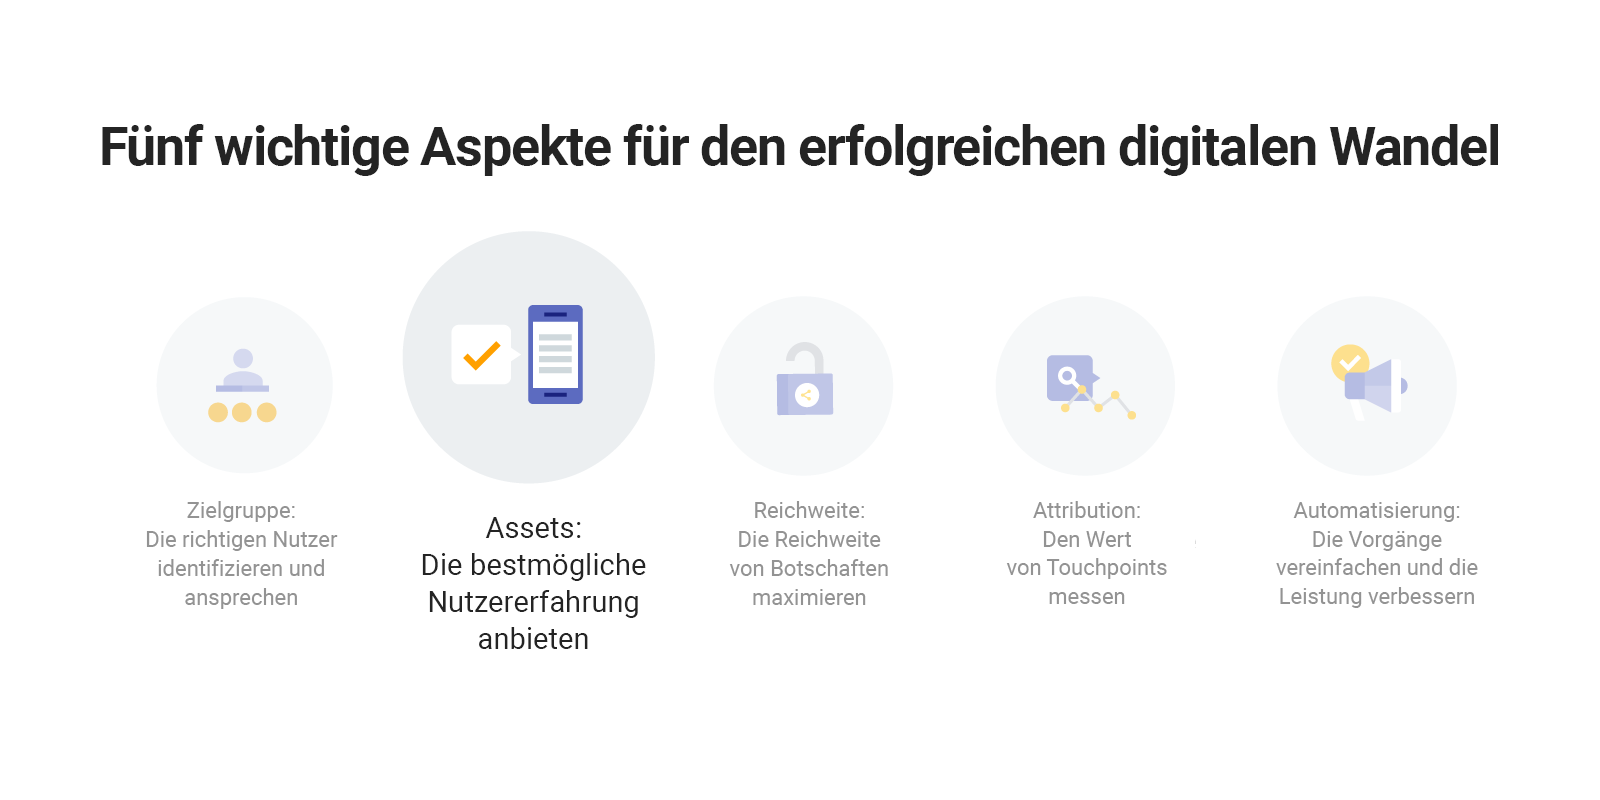 Fünf wichtige Aspekte beim Wandel des digitalen Marketings: Assets